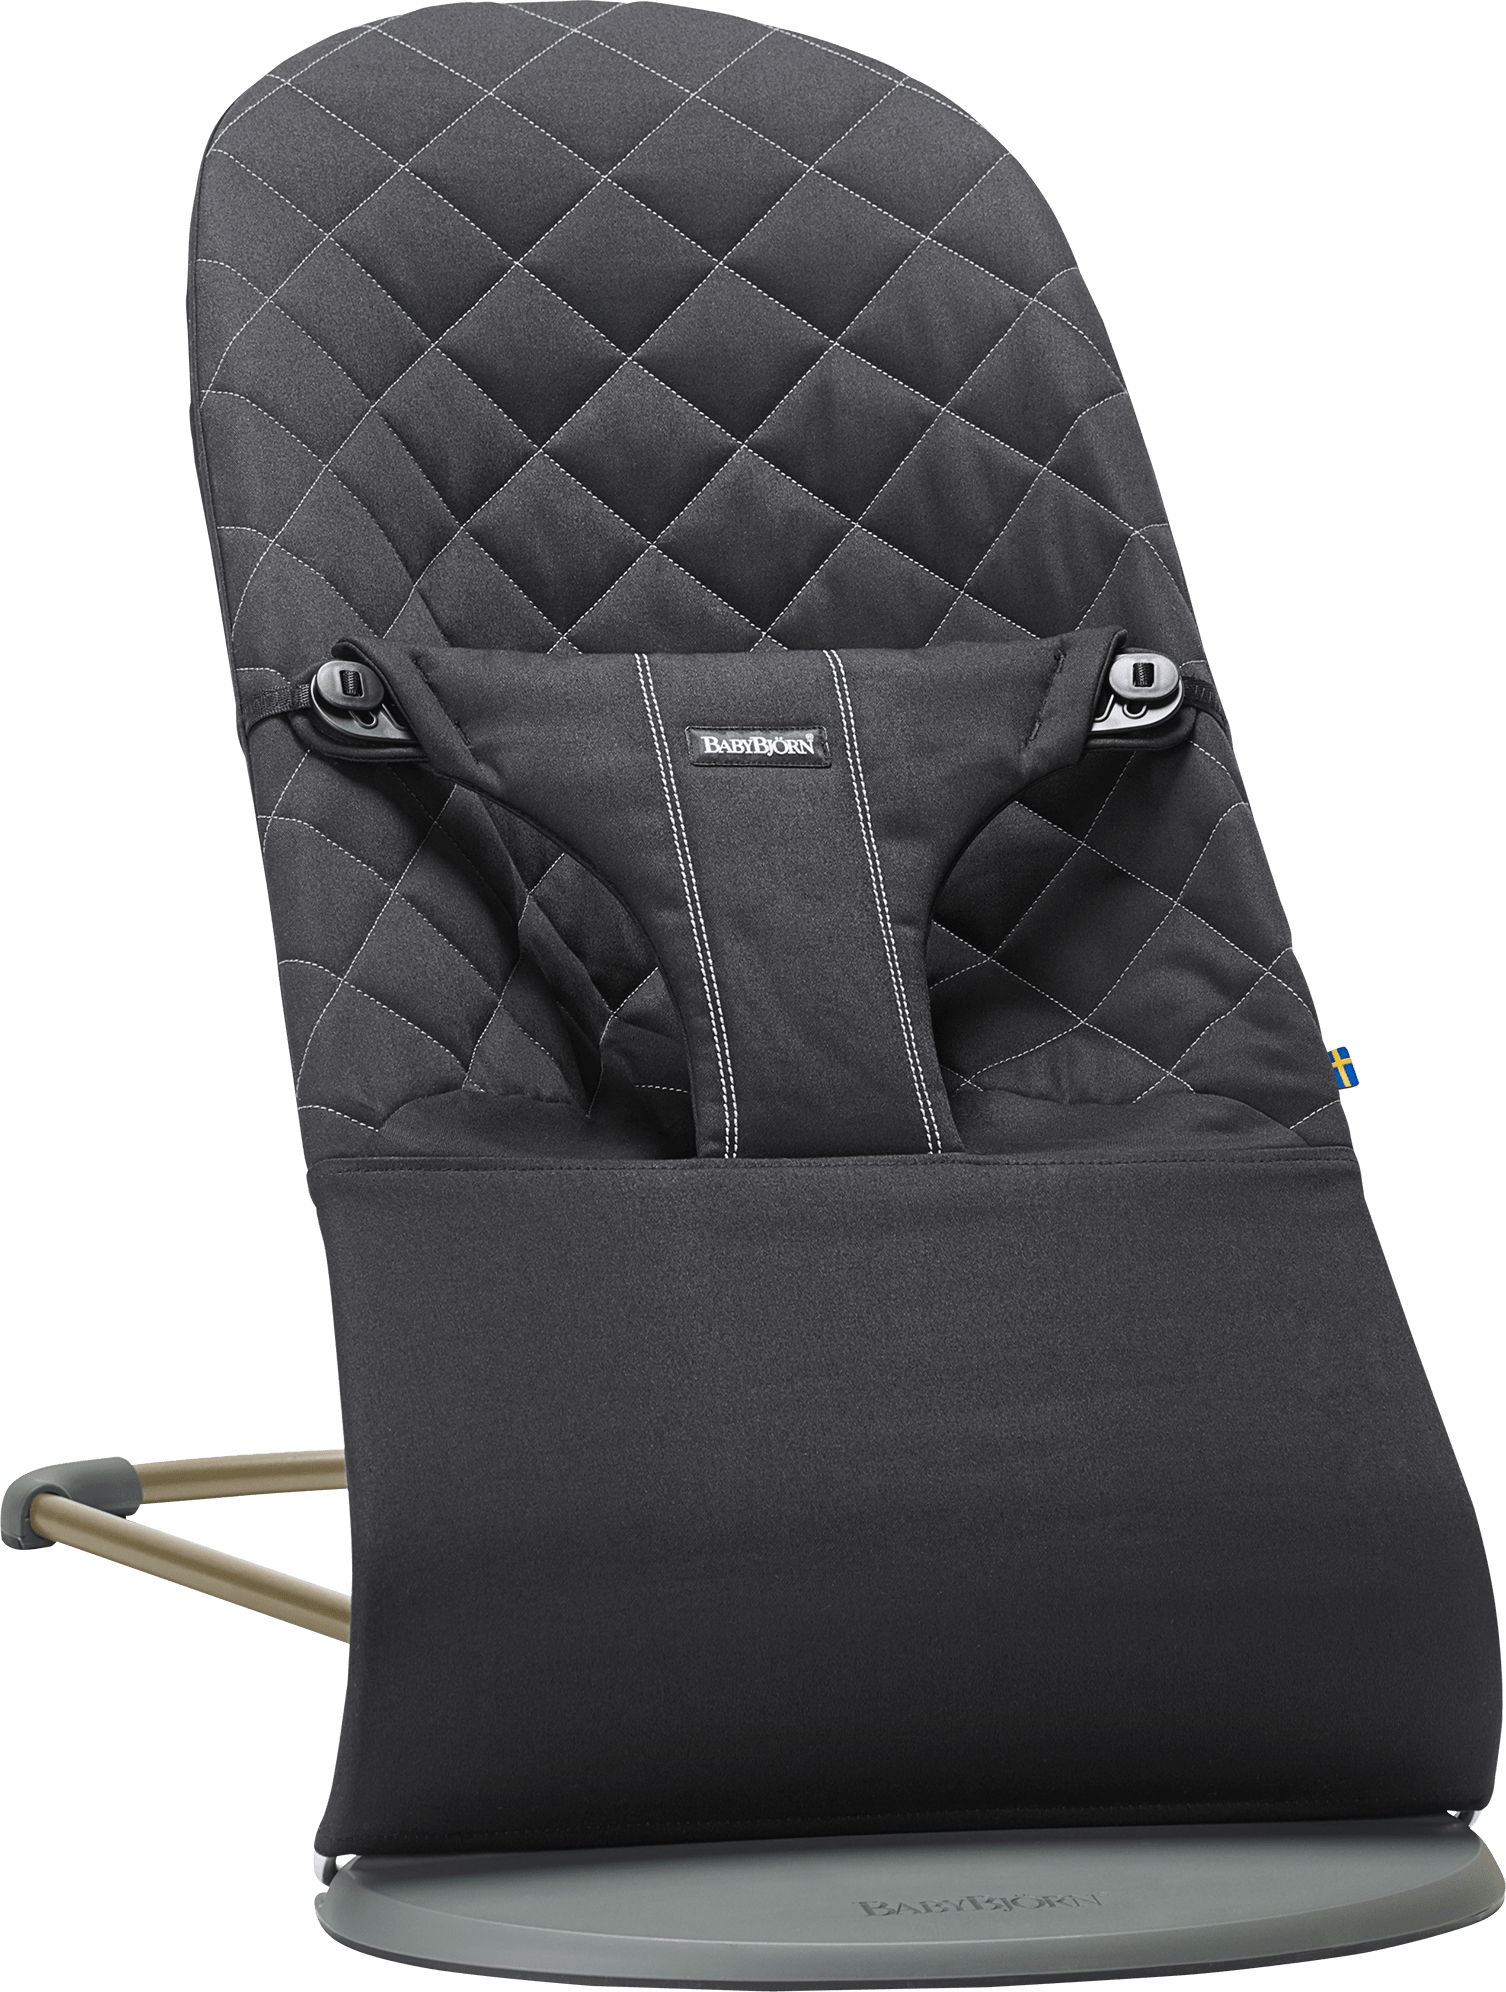 BABYBJÖRN Bouncer Bliss in black cotton, an ergonomic and cozy baby bouncer with gentle rocking.